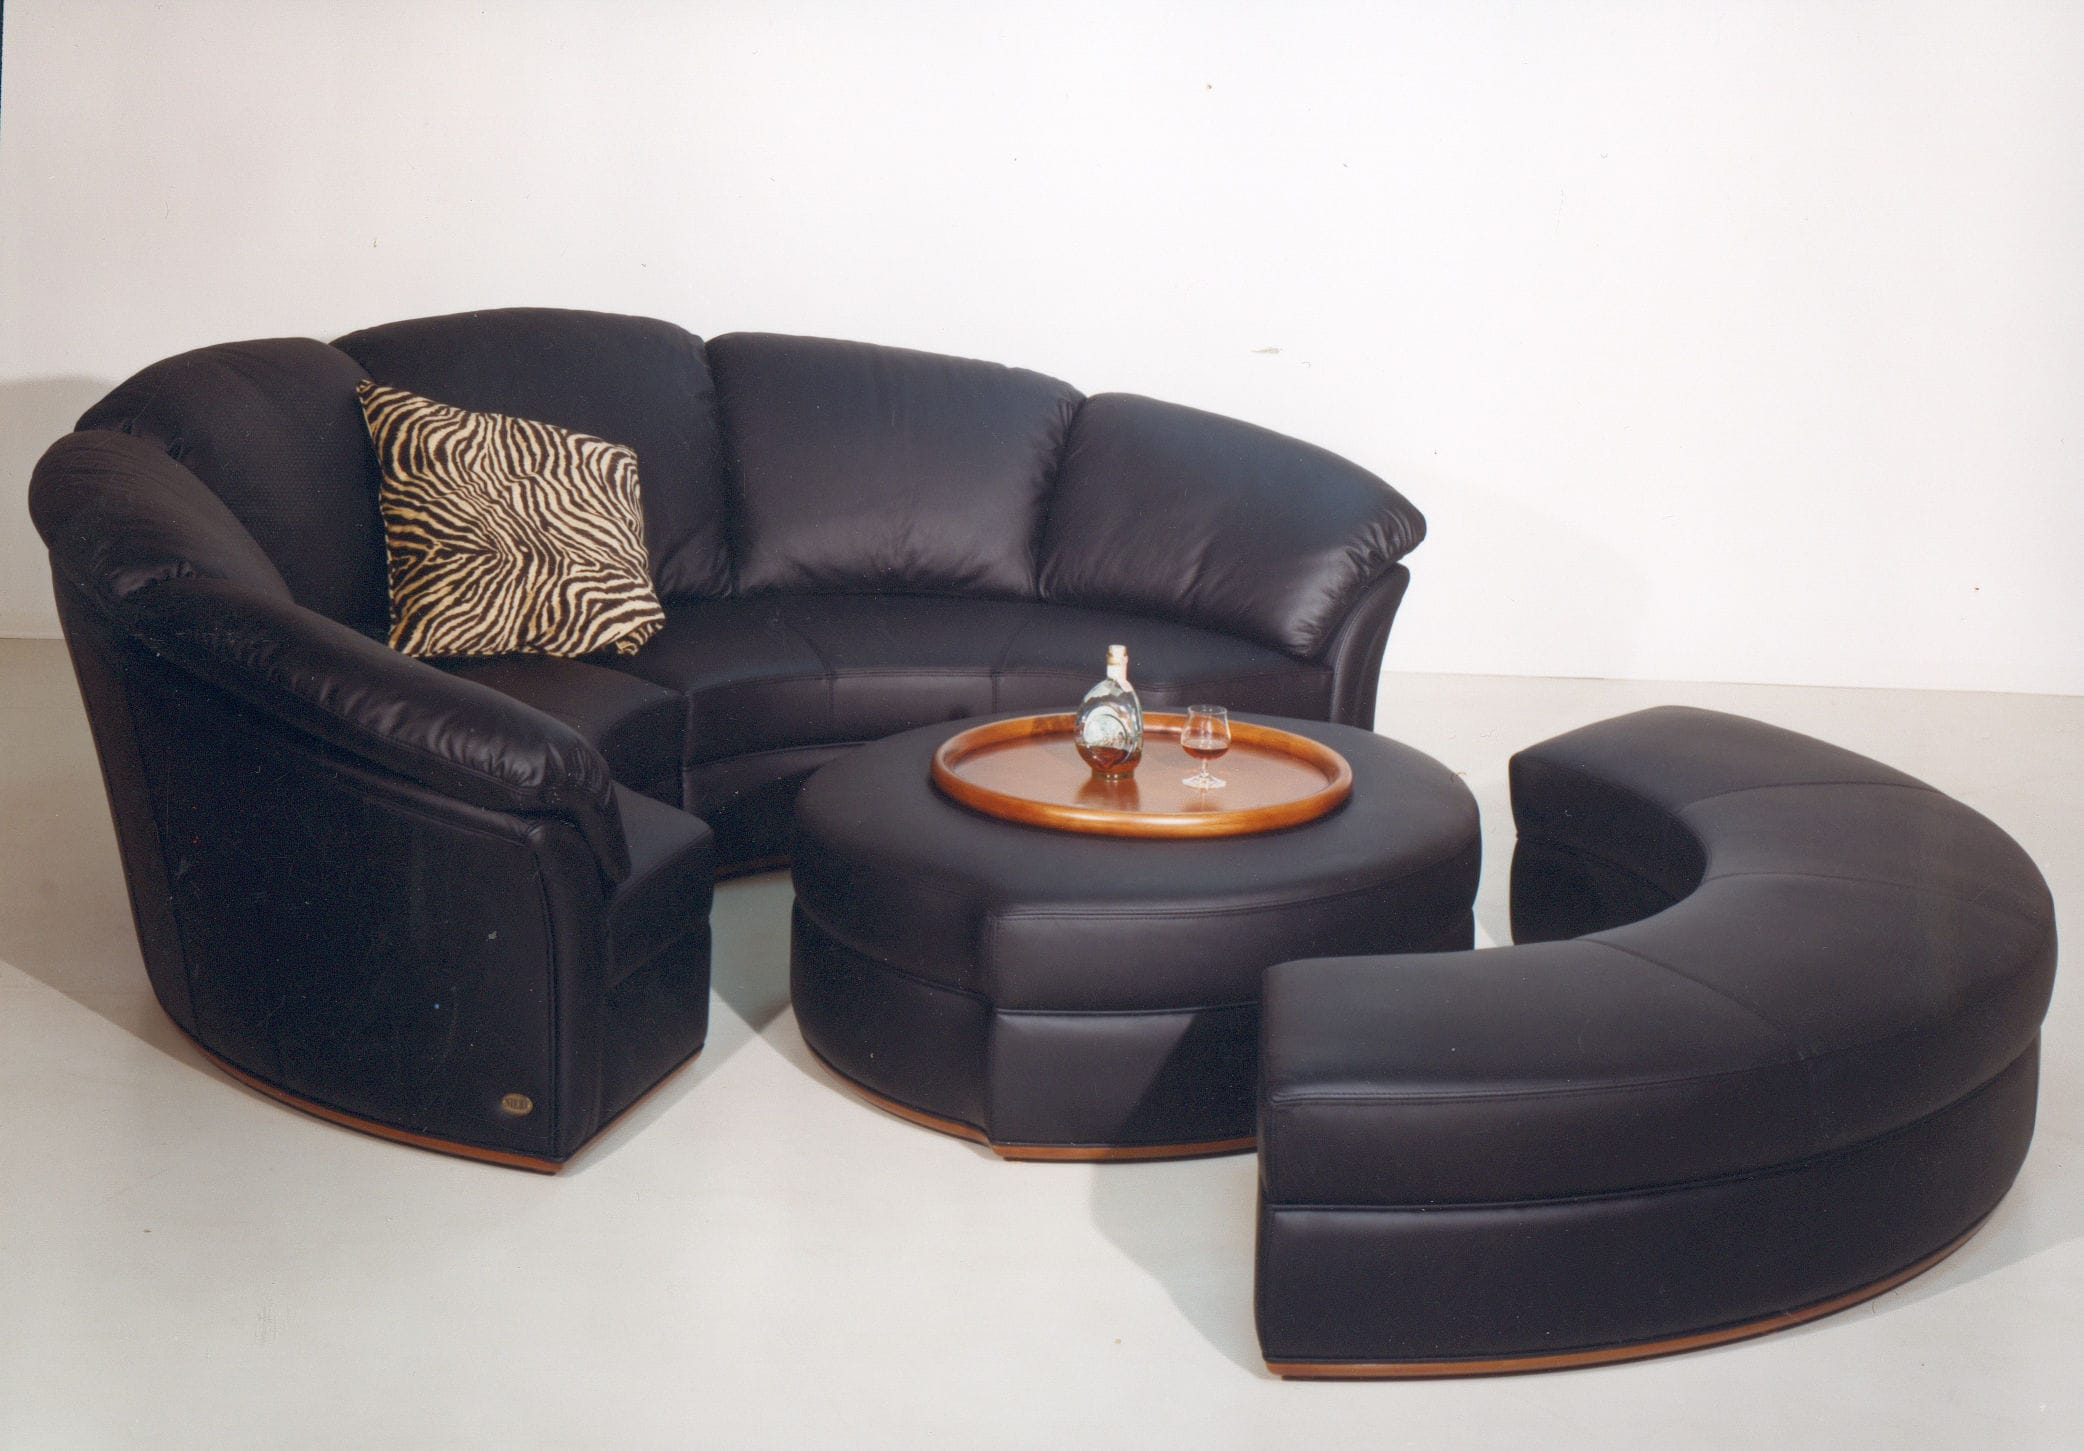 canap angle rond 5 id es de d coration int rieure french decor. Black Bedroom Furniture Sets. Home Design Ideas